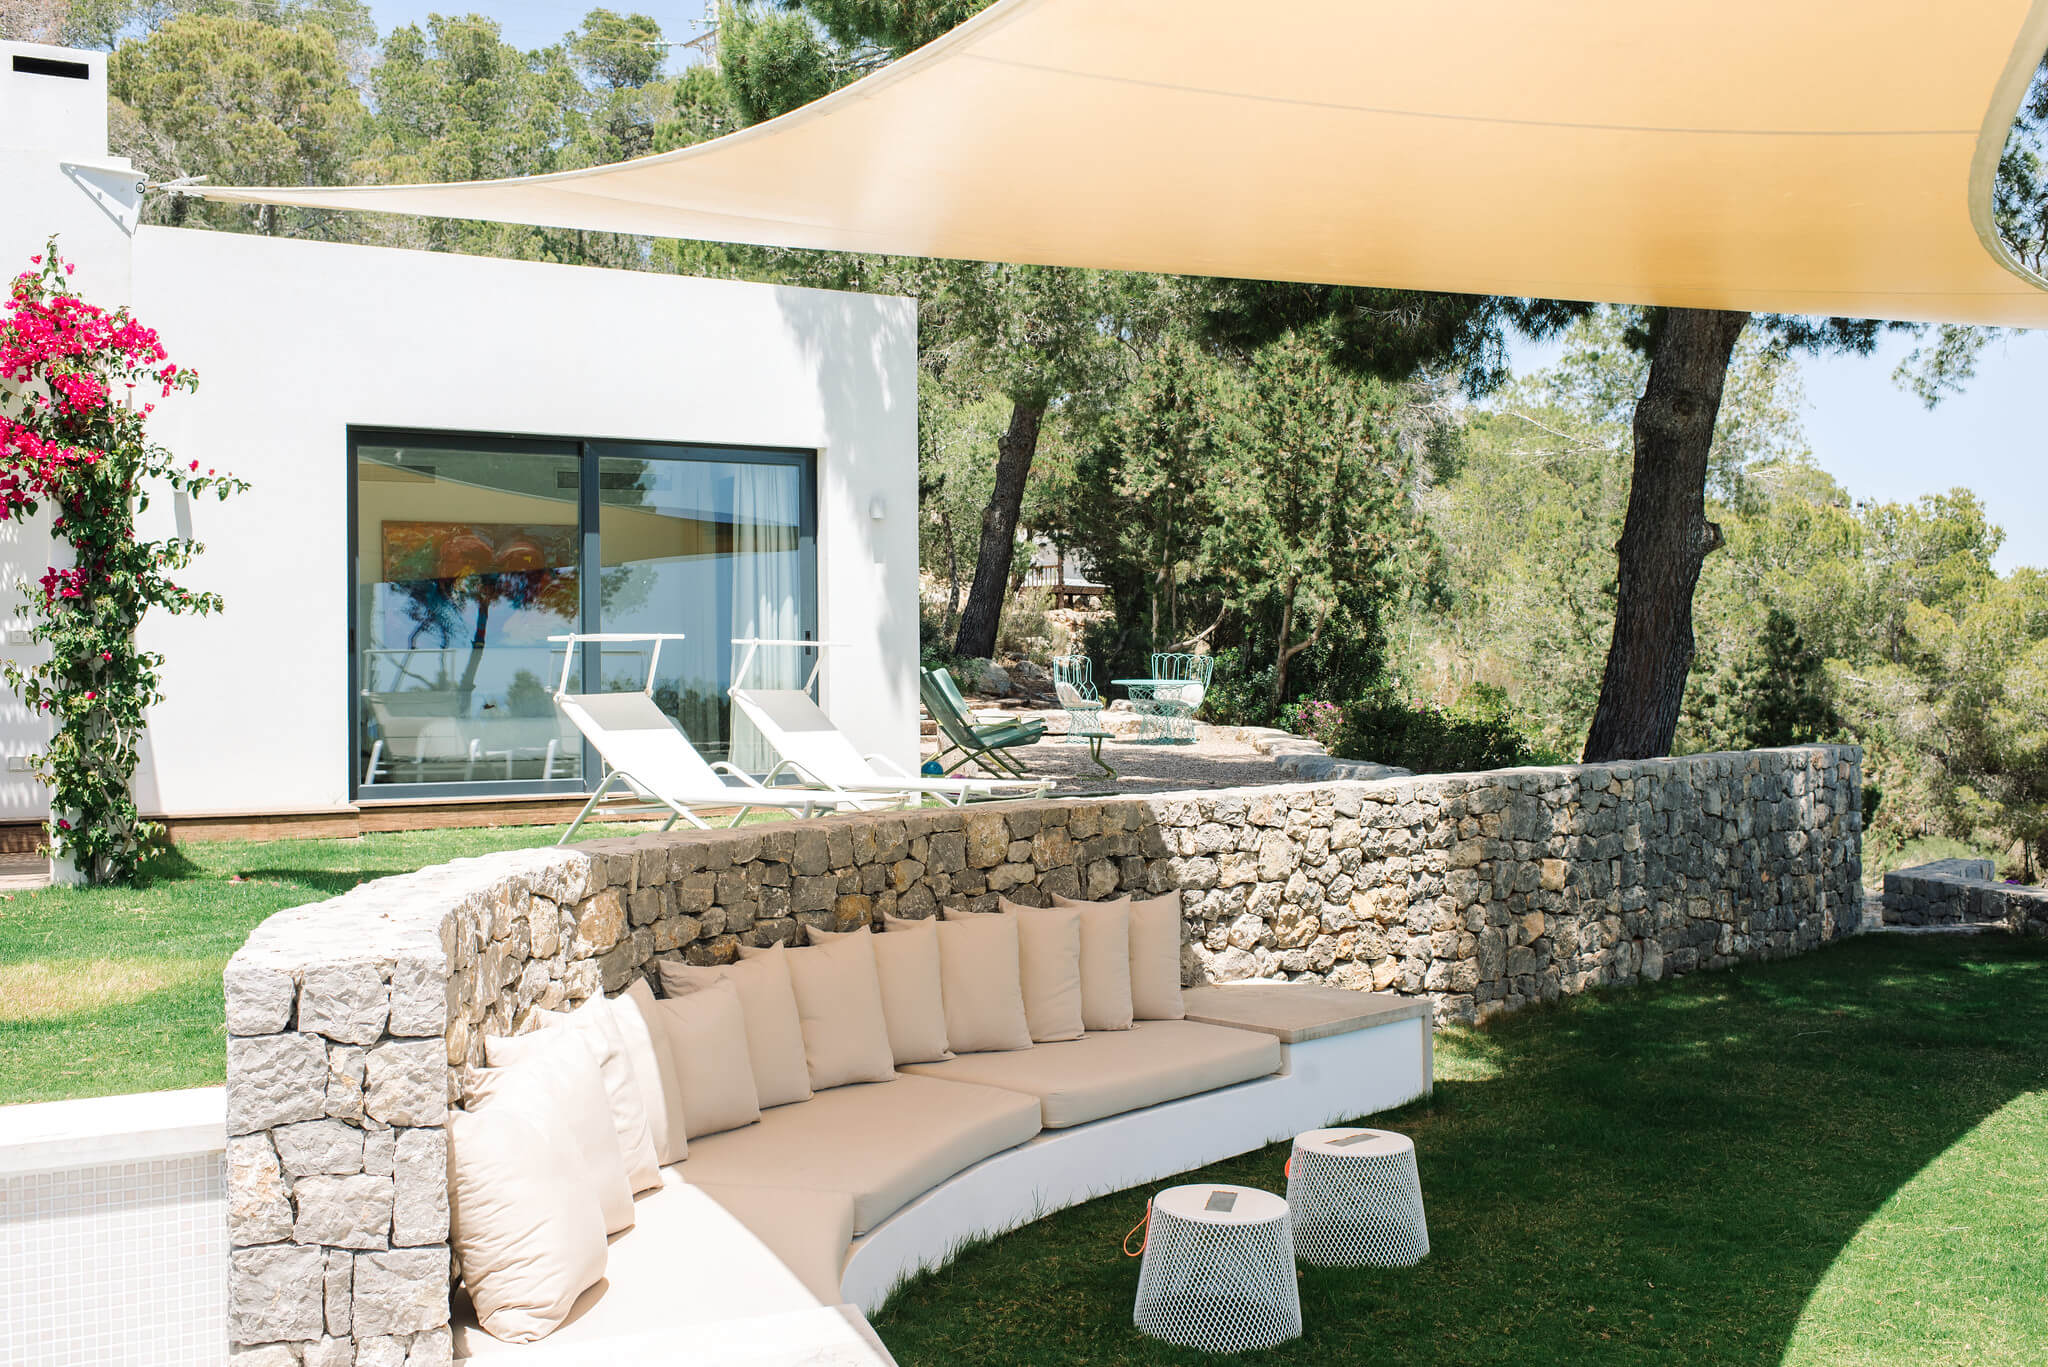 https://www.white-ibiza.com/wp-content/uploads/2020/06/white-ibiza-villas-can-jondal-exterior-shaded-chill-out.jpg